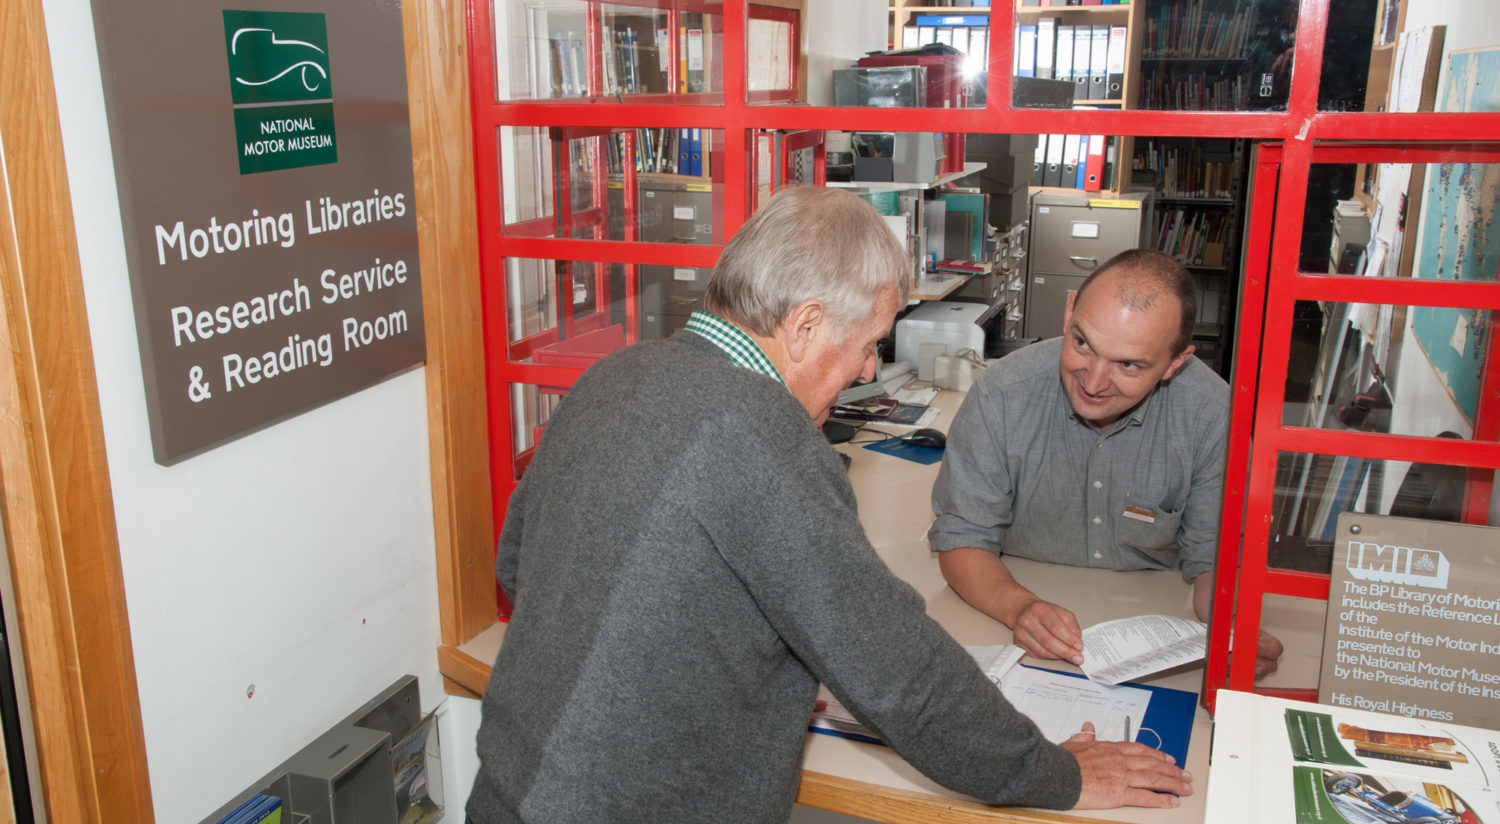 Two men at the enquiries window of the National Motor Museum Motoring Libraries Research Service & Reading Room